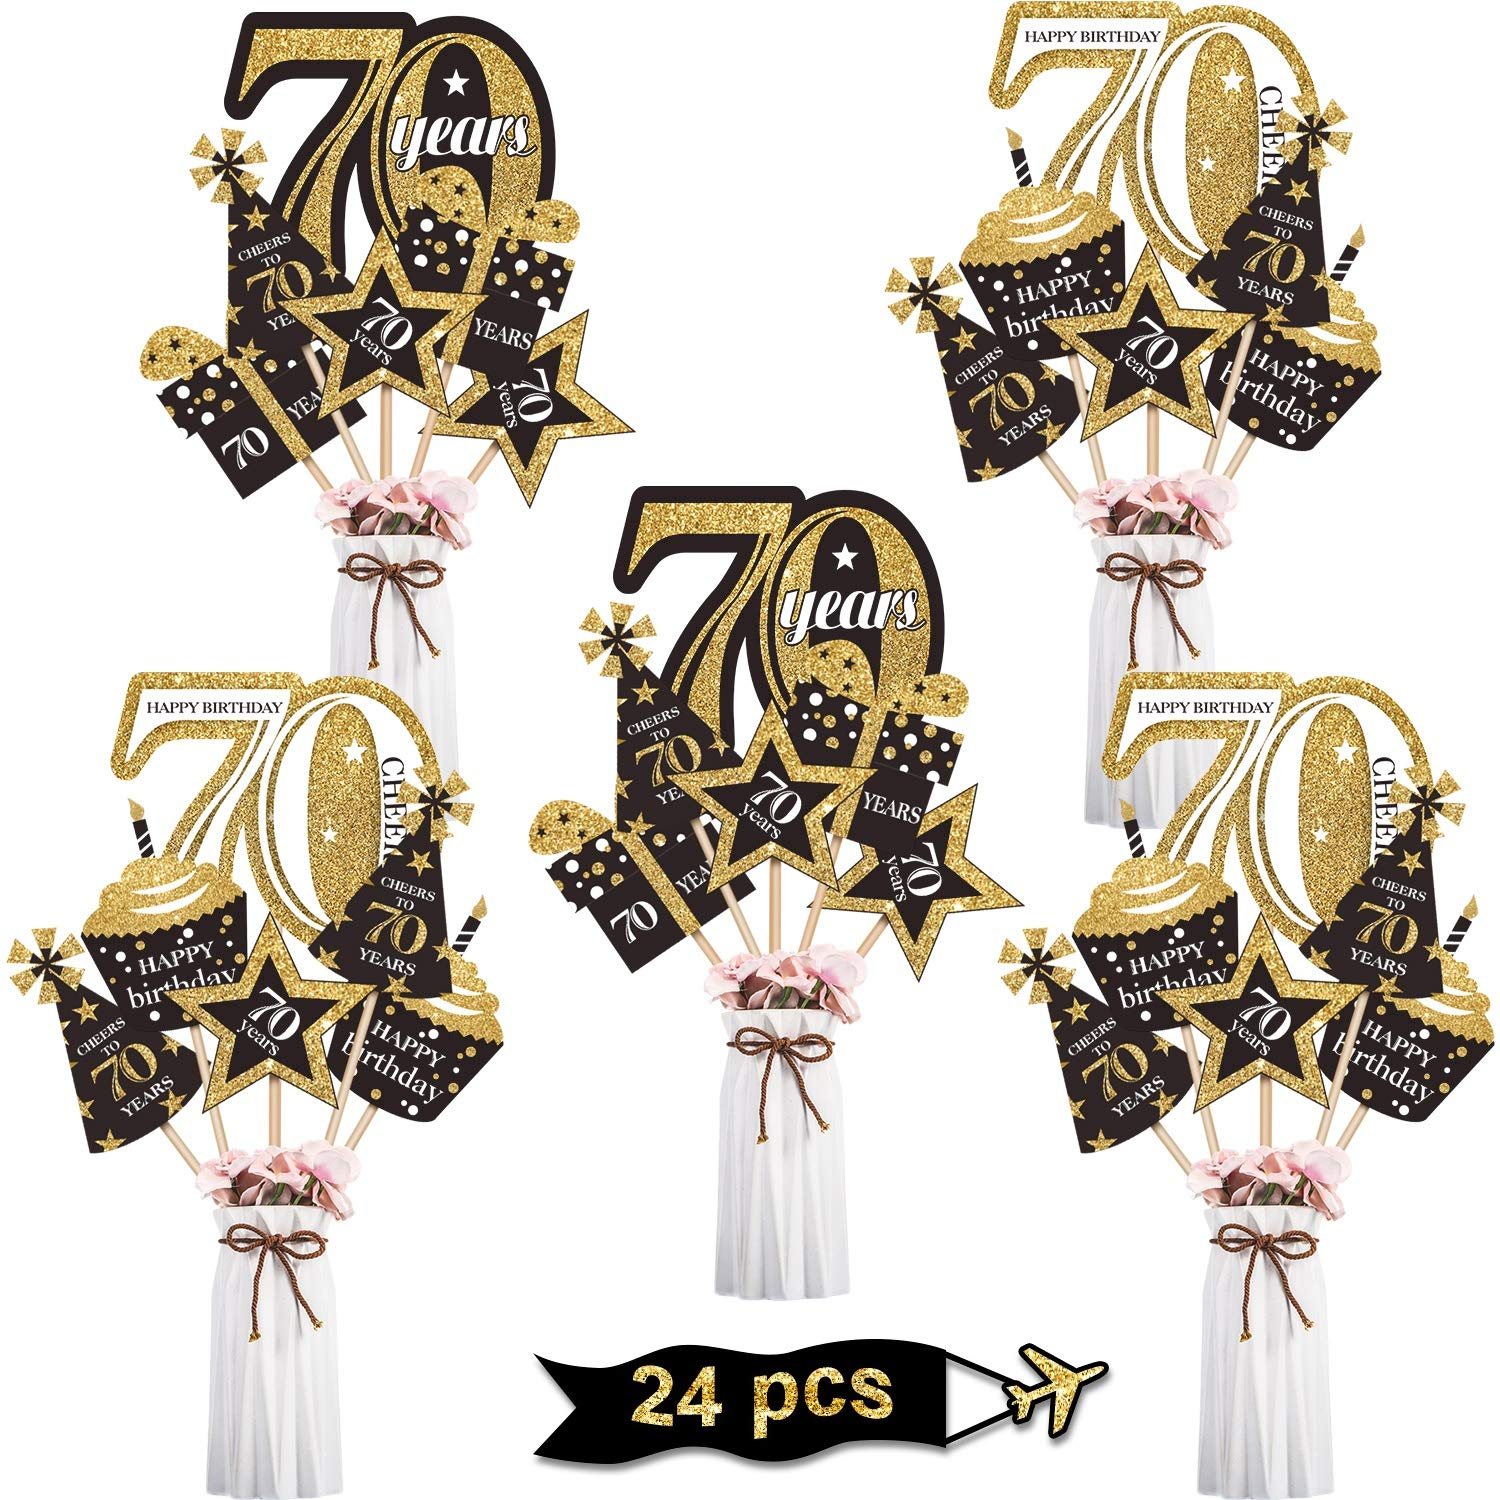 Blulu Birthday Party Decoration Satz Golden Birthday Party Centerpiece Sticks Glitter Table Toppers Party Supplies, 24 Pack (70Th Birthday)